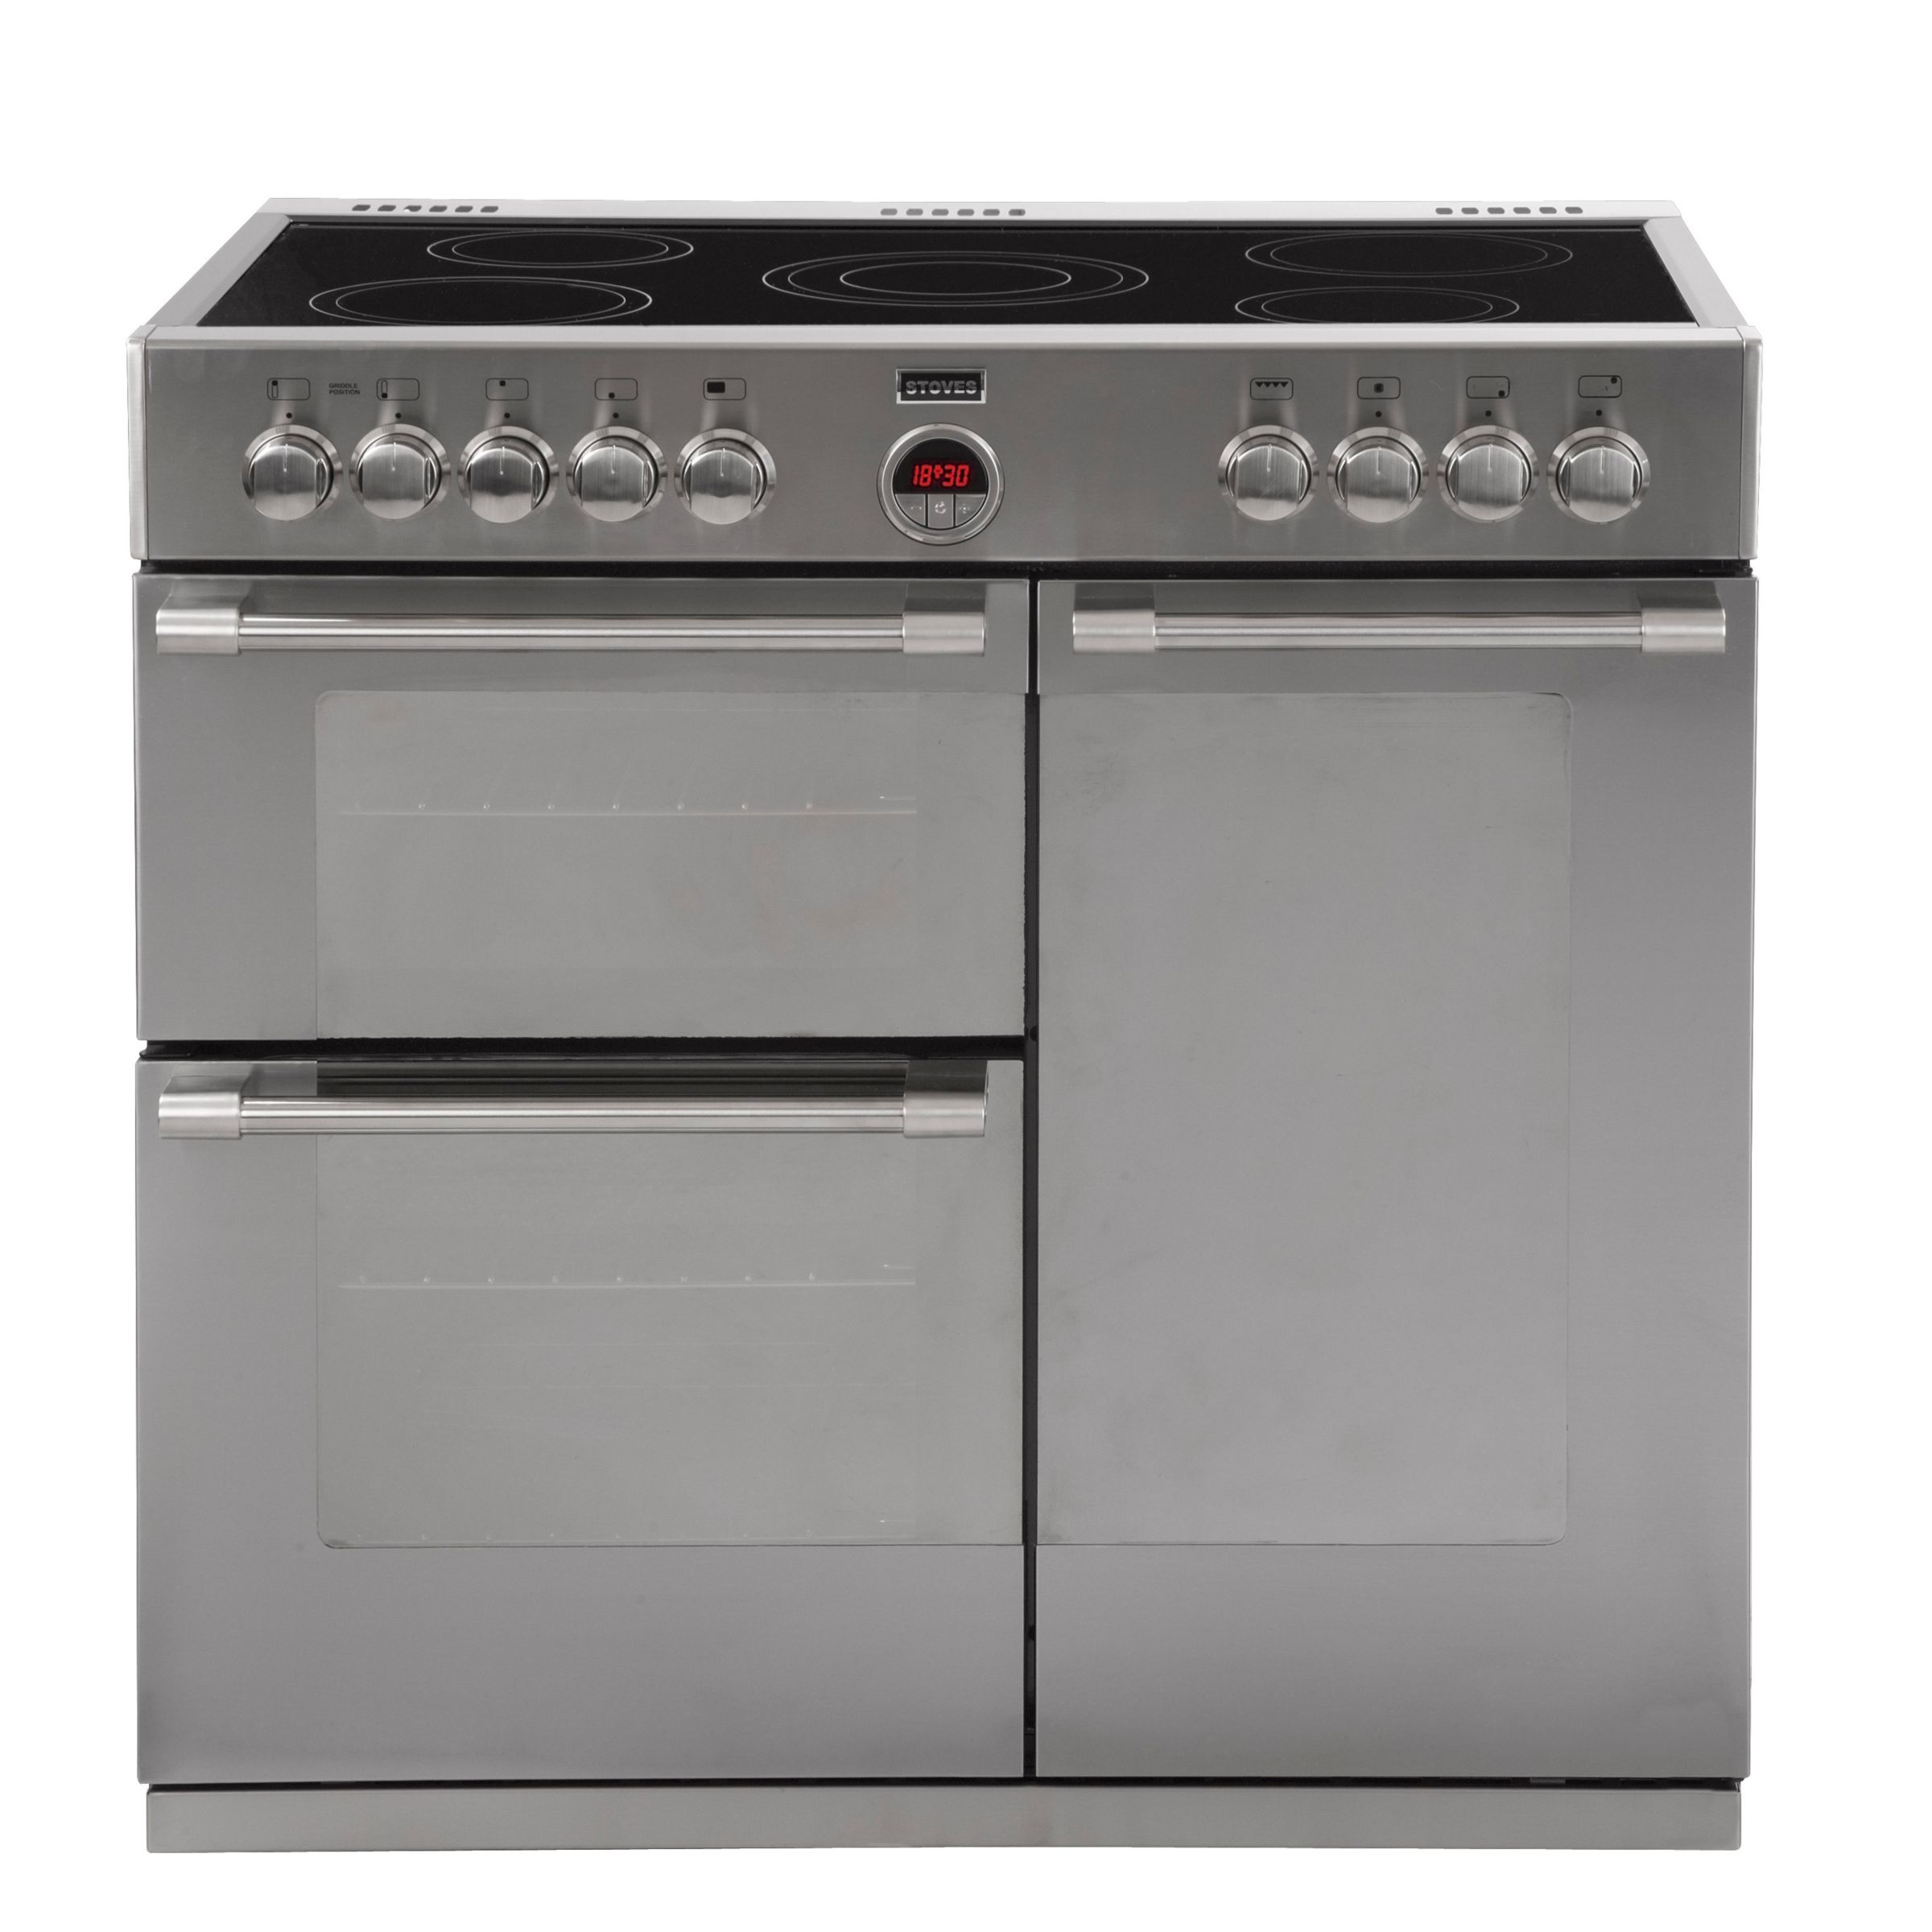 Stoves Stoves Sterling 900E Electric Range Cooker, Stainless Steel